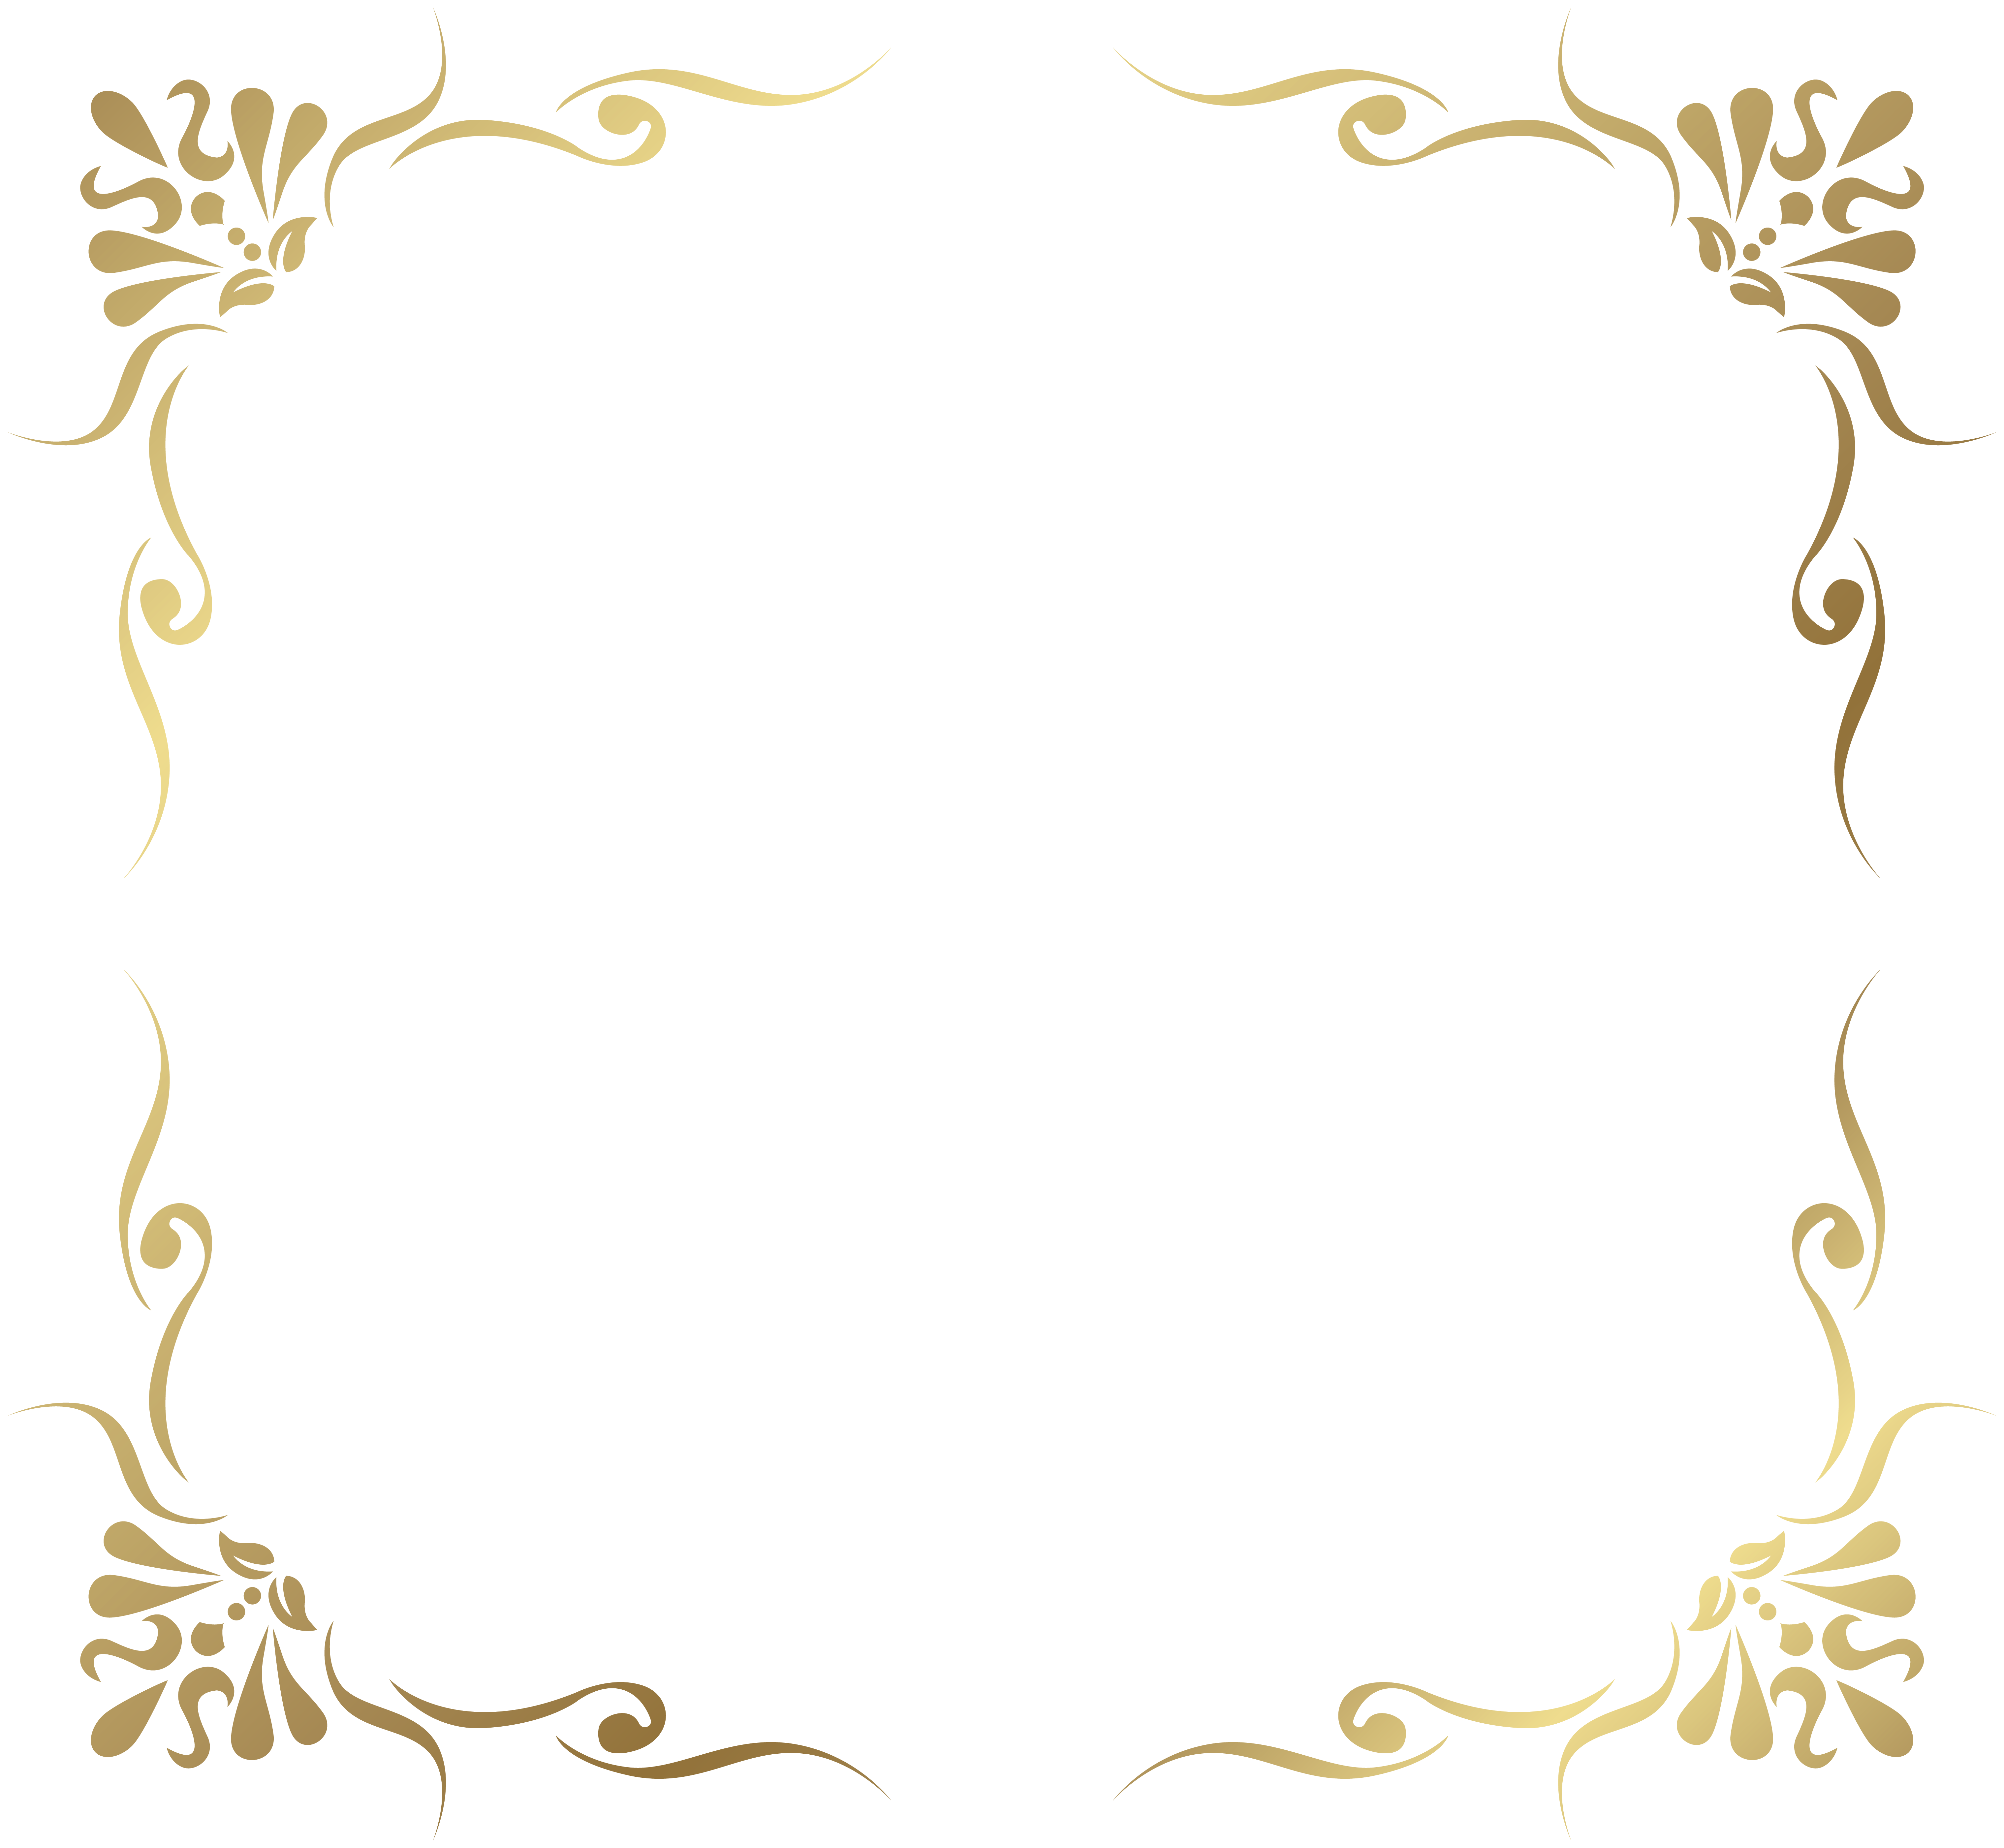 Border Frame PNG Icon PNG Images